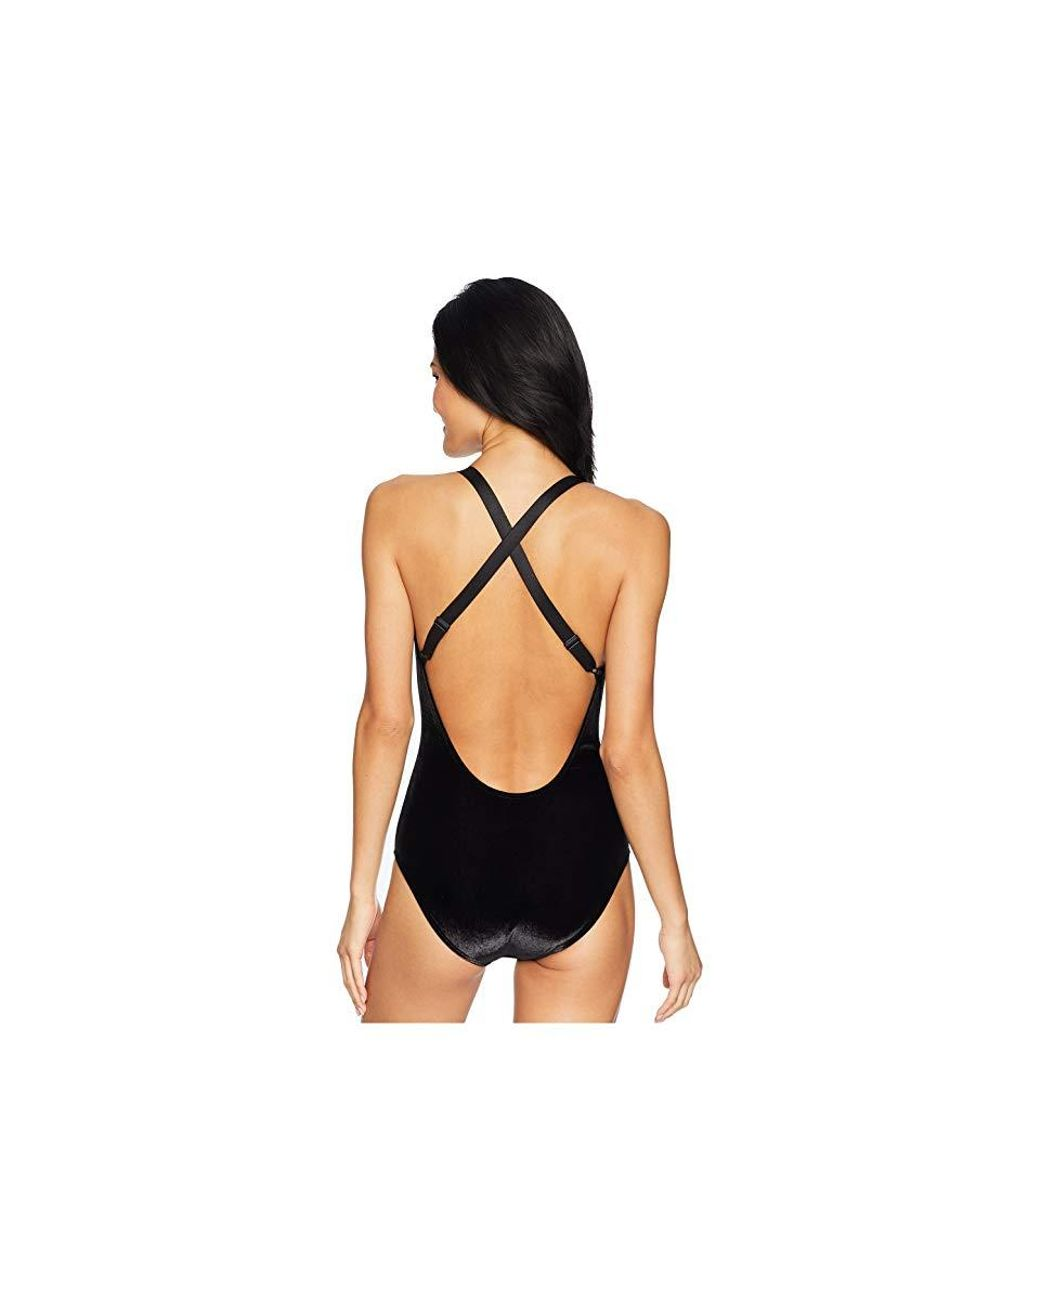 3f212ee2d2 Roxy Western Escape Velvet One-piece Swimsuit (anthracite) Swimsuits One  Piece in Black - Save 41% - Lyst